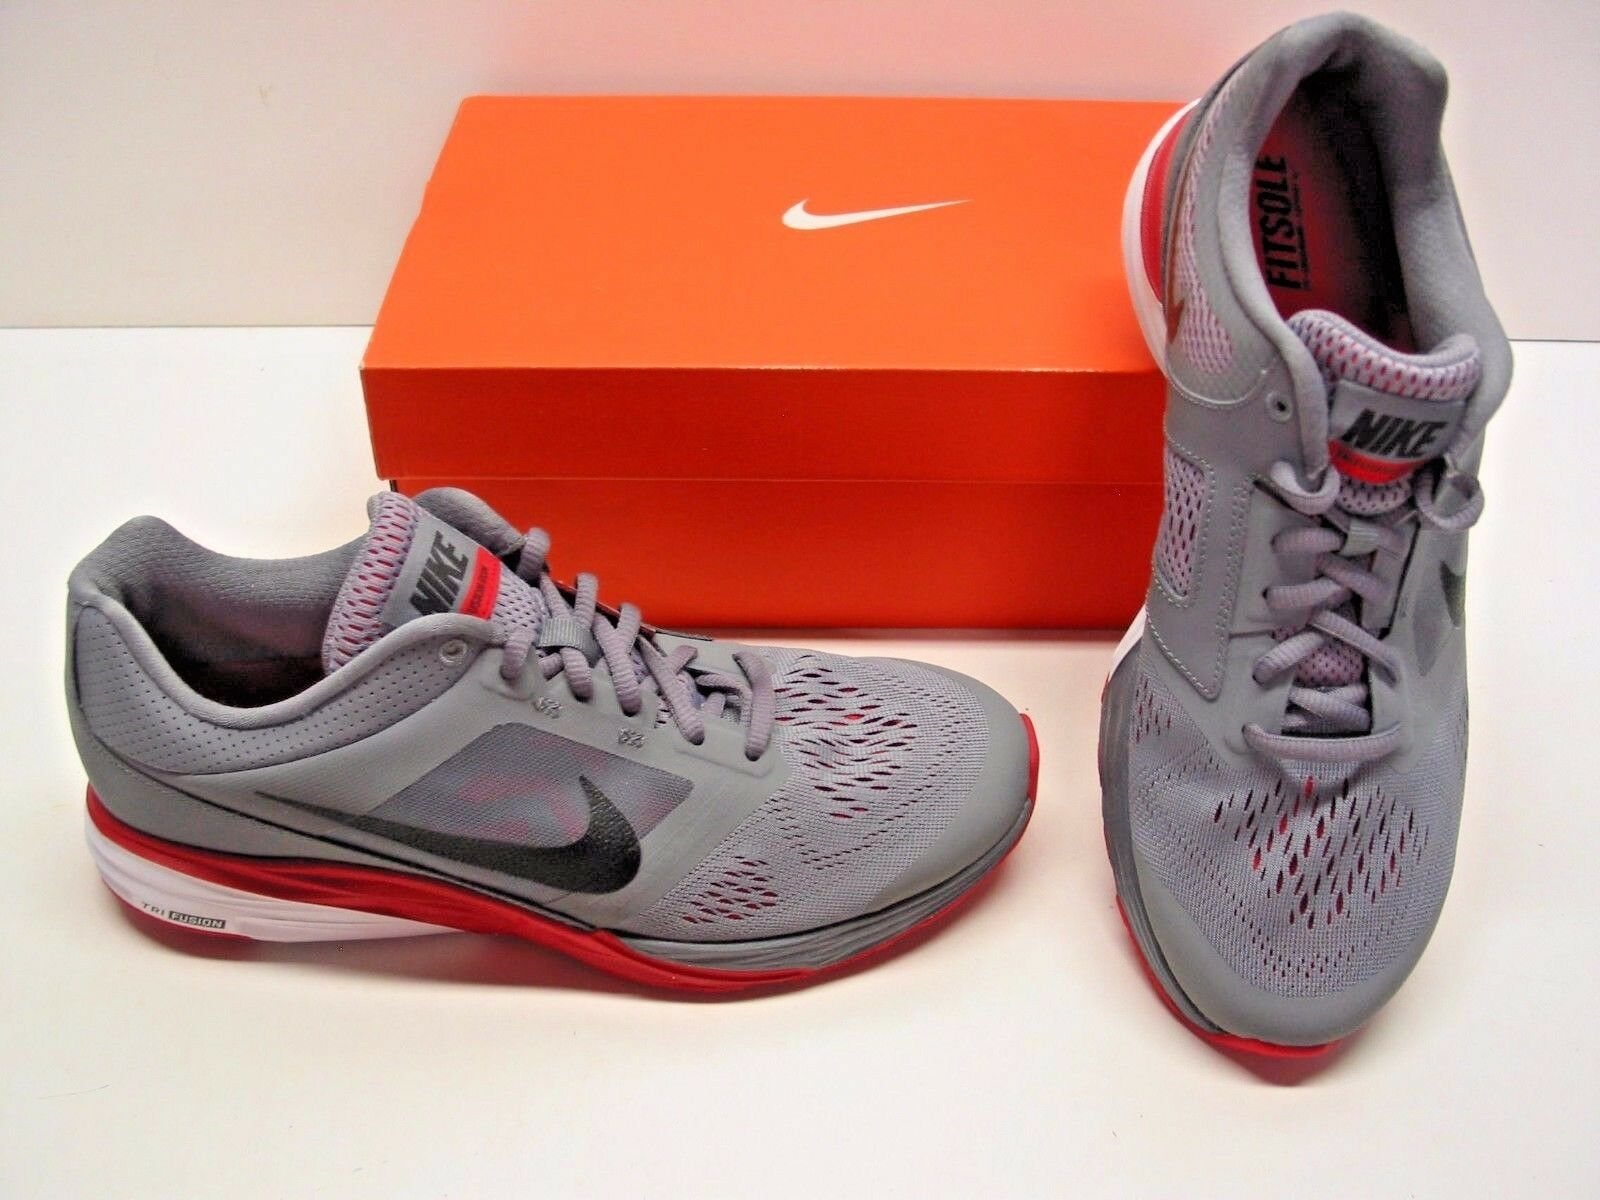 Nike Athletic Tri Fusion Run Running Trainer Gray Red Athletic Nike Sneakers Shoes Mens 8.5 a8566e